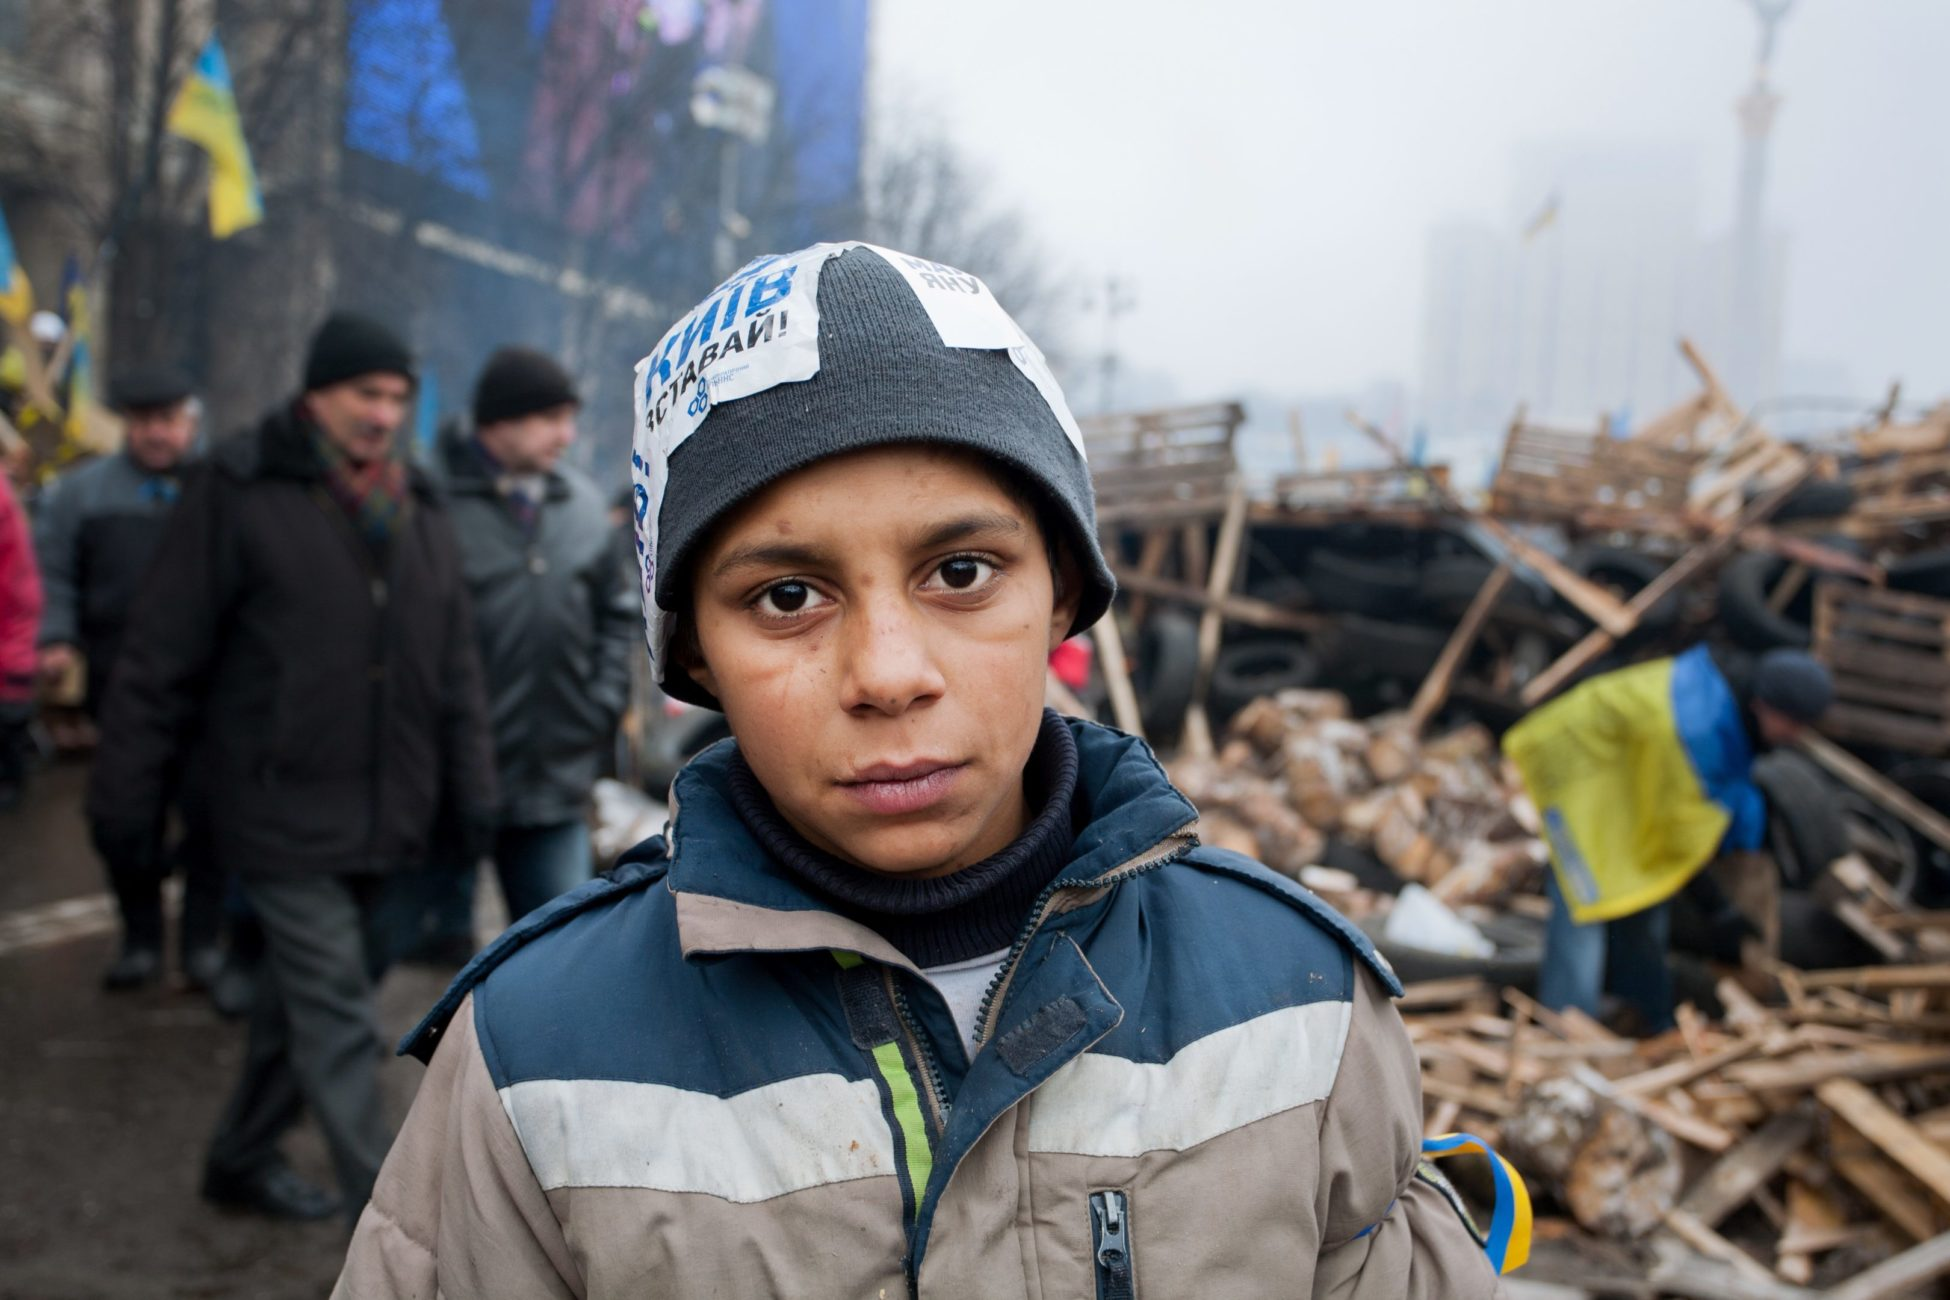 In the midst of a rubble, a young and determined looking boy, wearing a coat and warm hat, poses for the camera